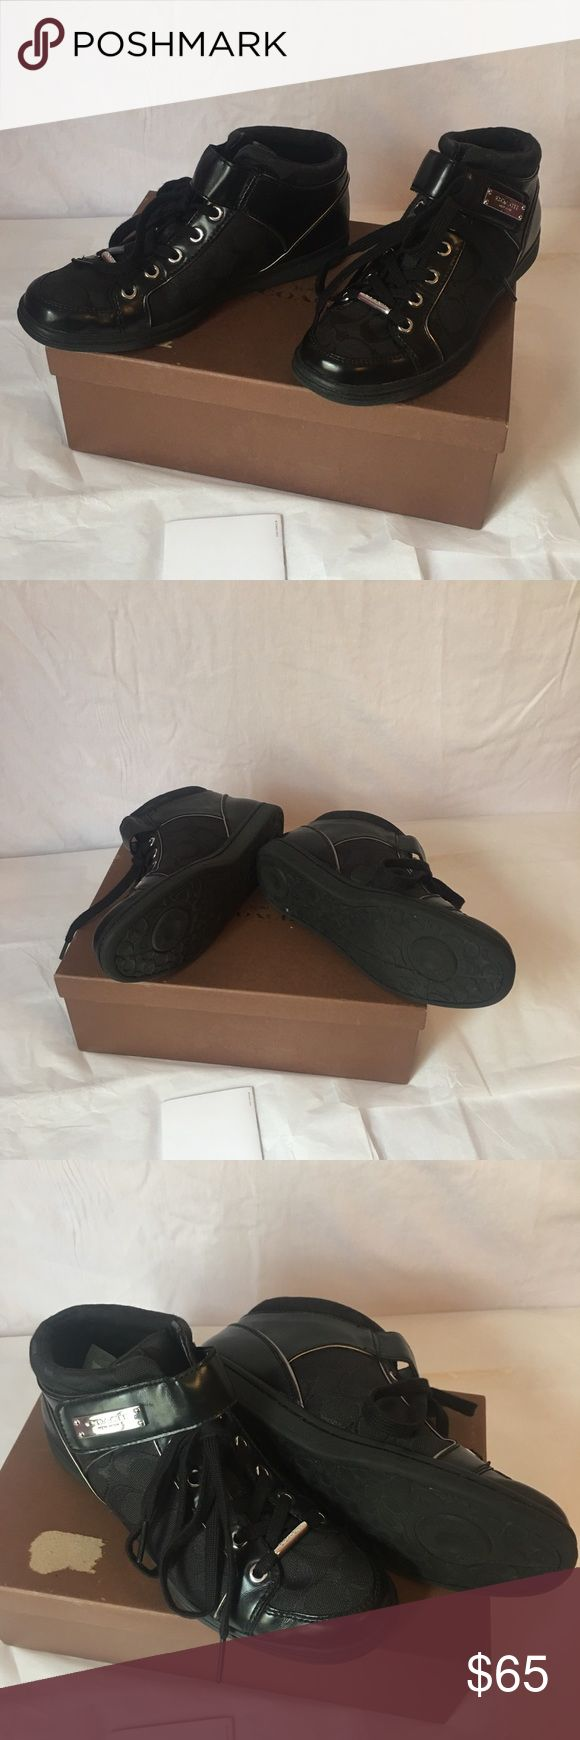 authentic coach sneakers - rarely ever worn  - original box not included Coach Shoes Sneakers